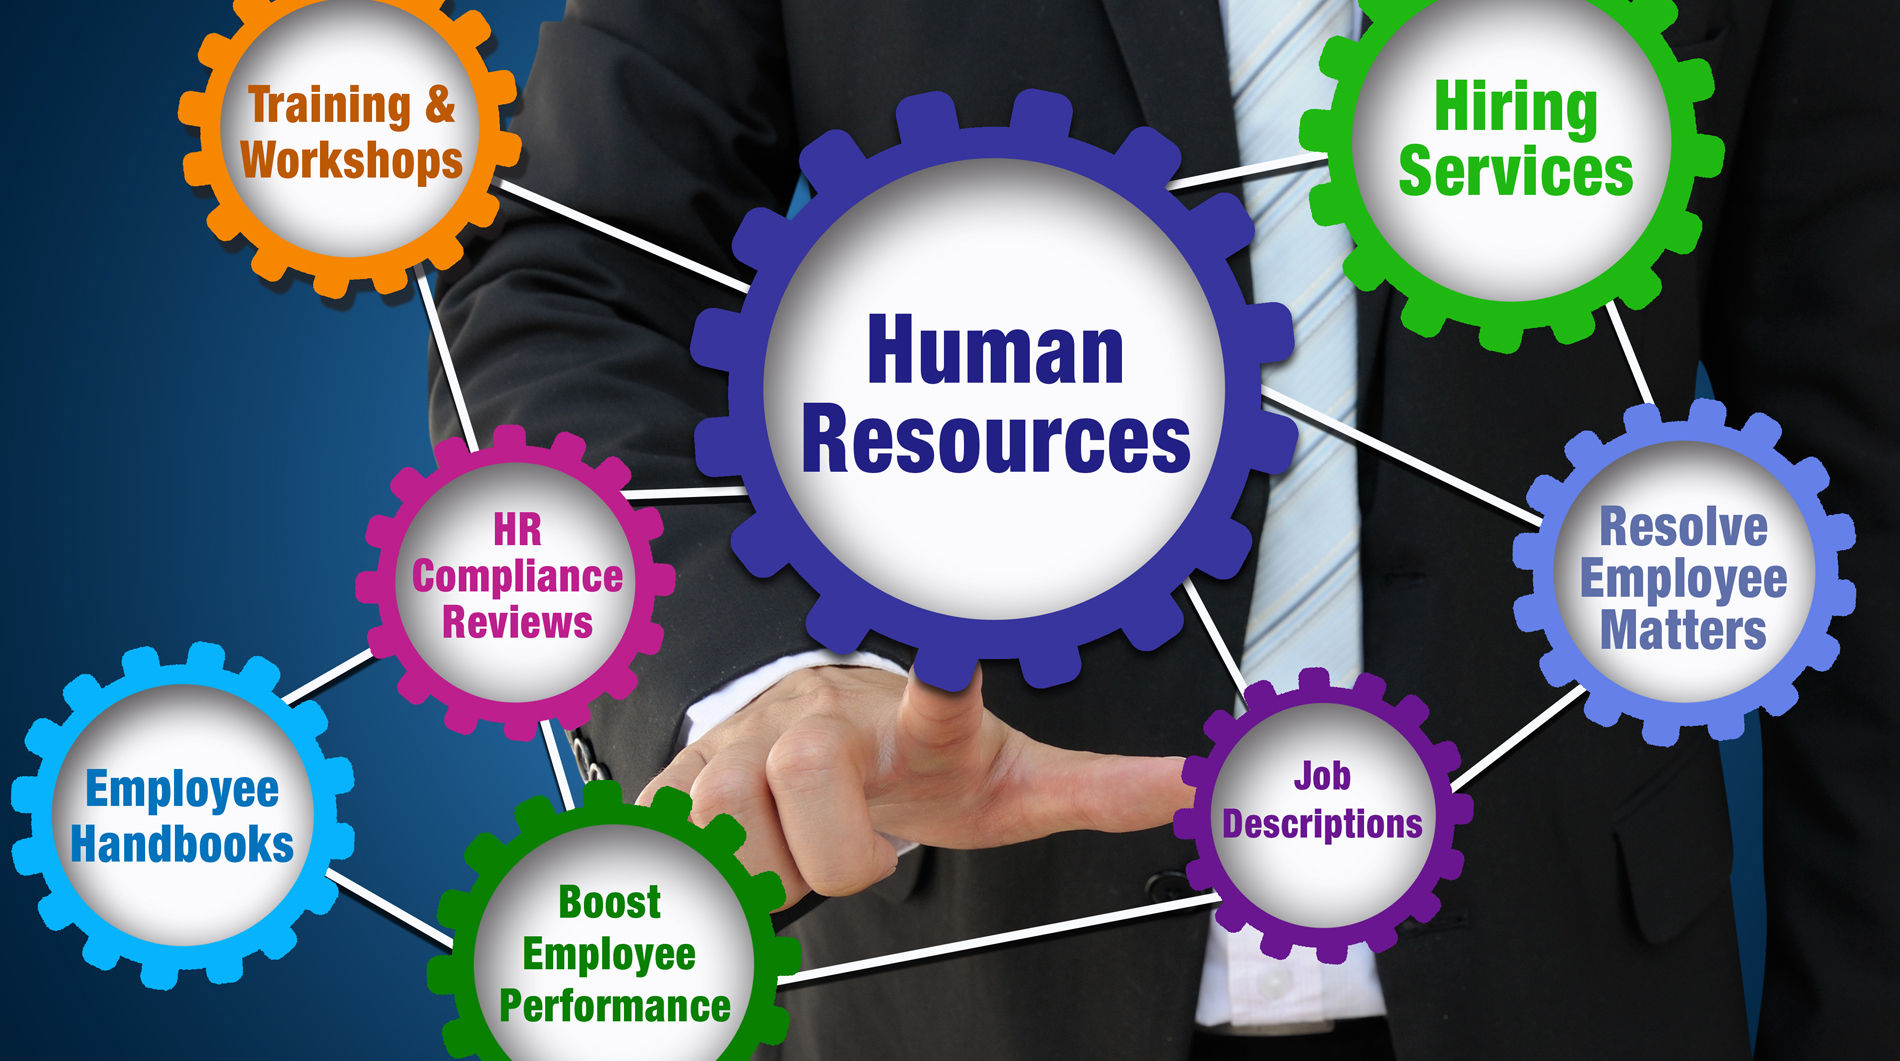 human resources technological resources and reputation Chapter 2: strategic human resource management chapter 3: the legal environment: equal employment opportunity and safety chapter 4: the analysis and design of work part two: acquisition and preparation of human resources chapter 5: human resource planning and.